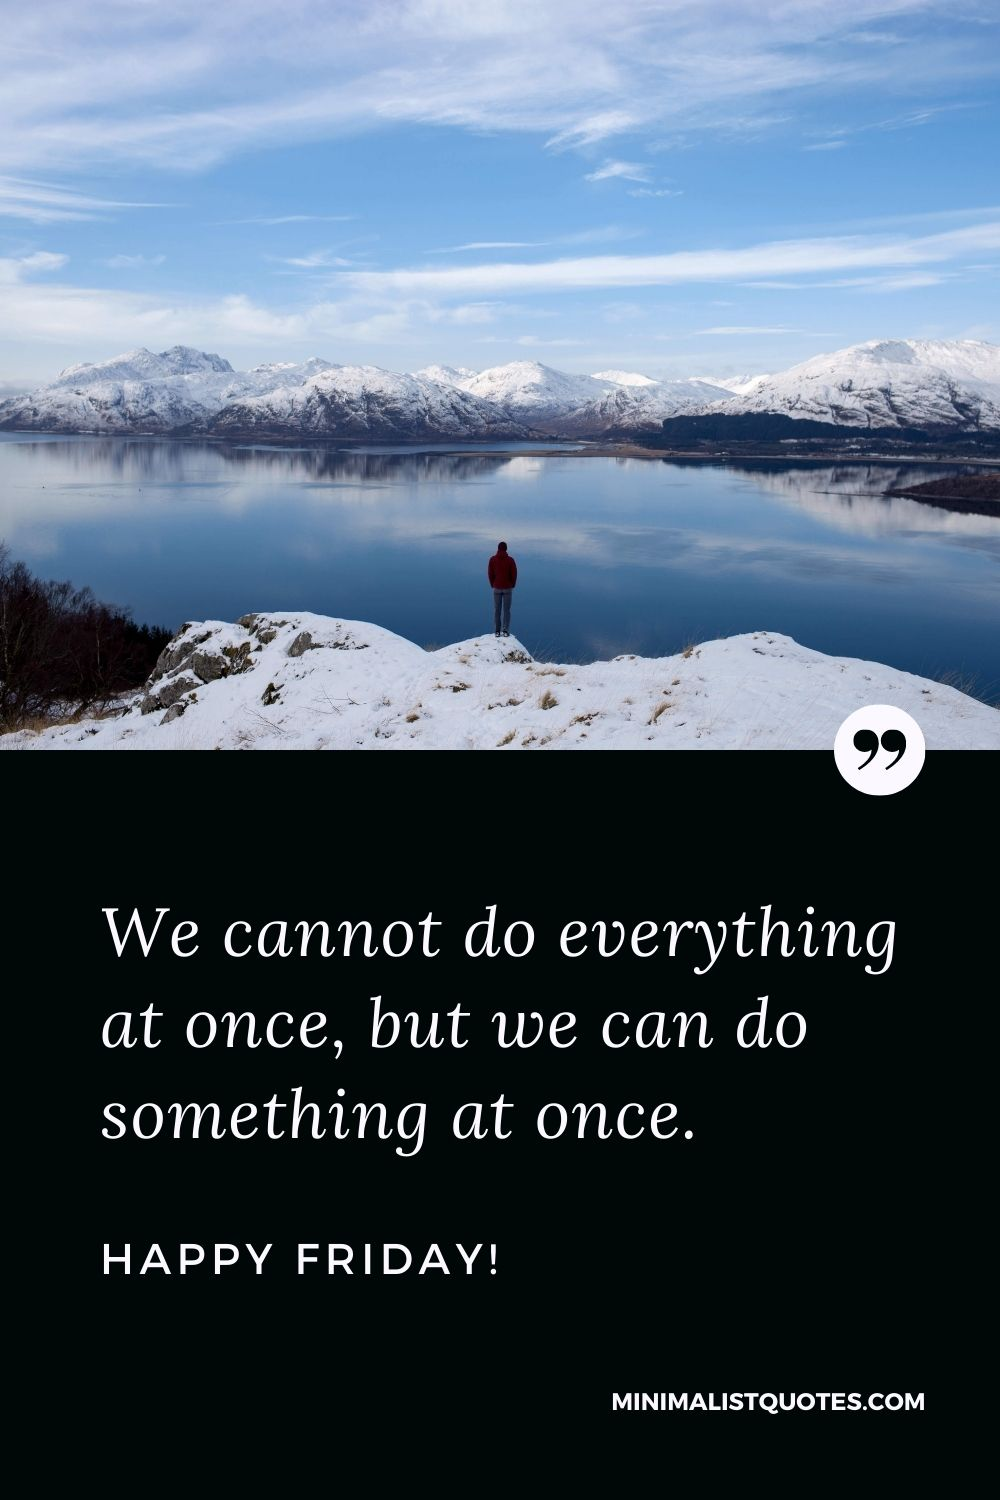 Friday Quote, Wish & Message With Image: We cannot do everything at once, but we can do something at once. Happy Friday!